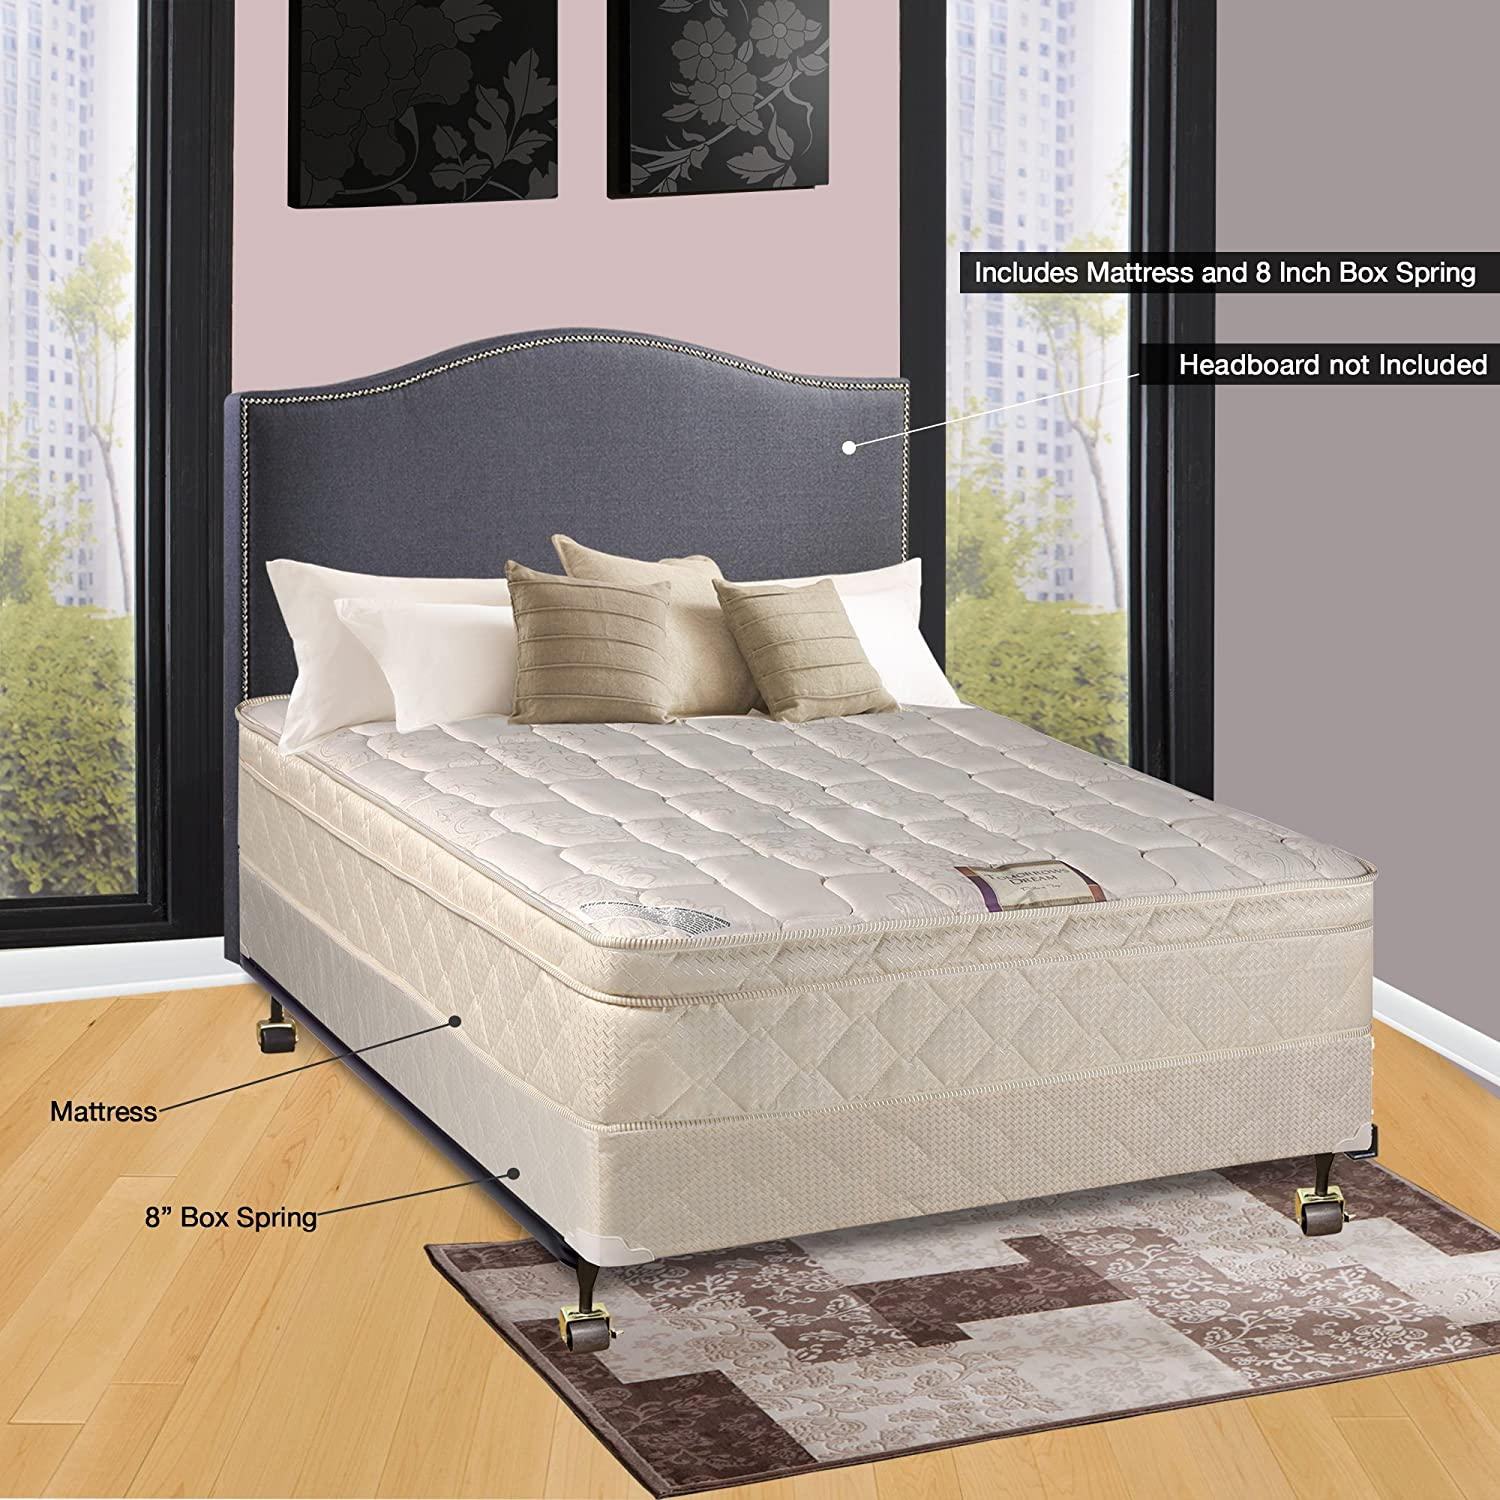 mattress protect of king and how size bed luxury set basement image jeffsbakery to sets